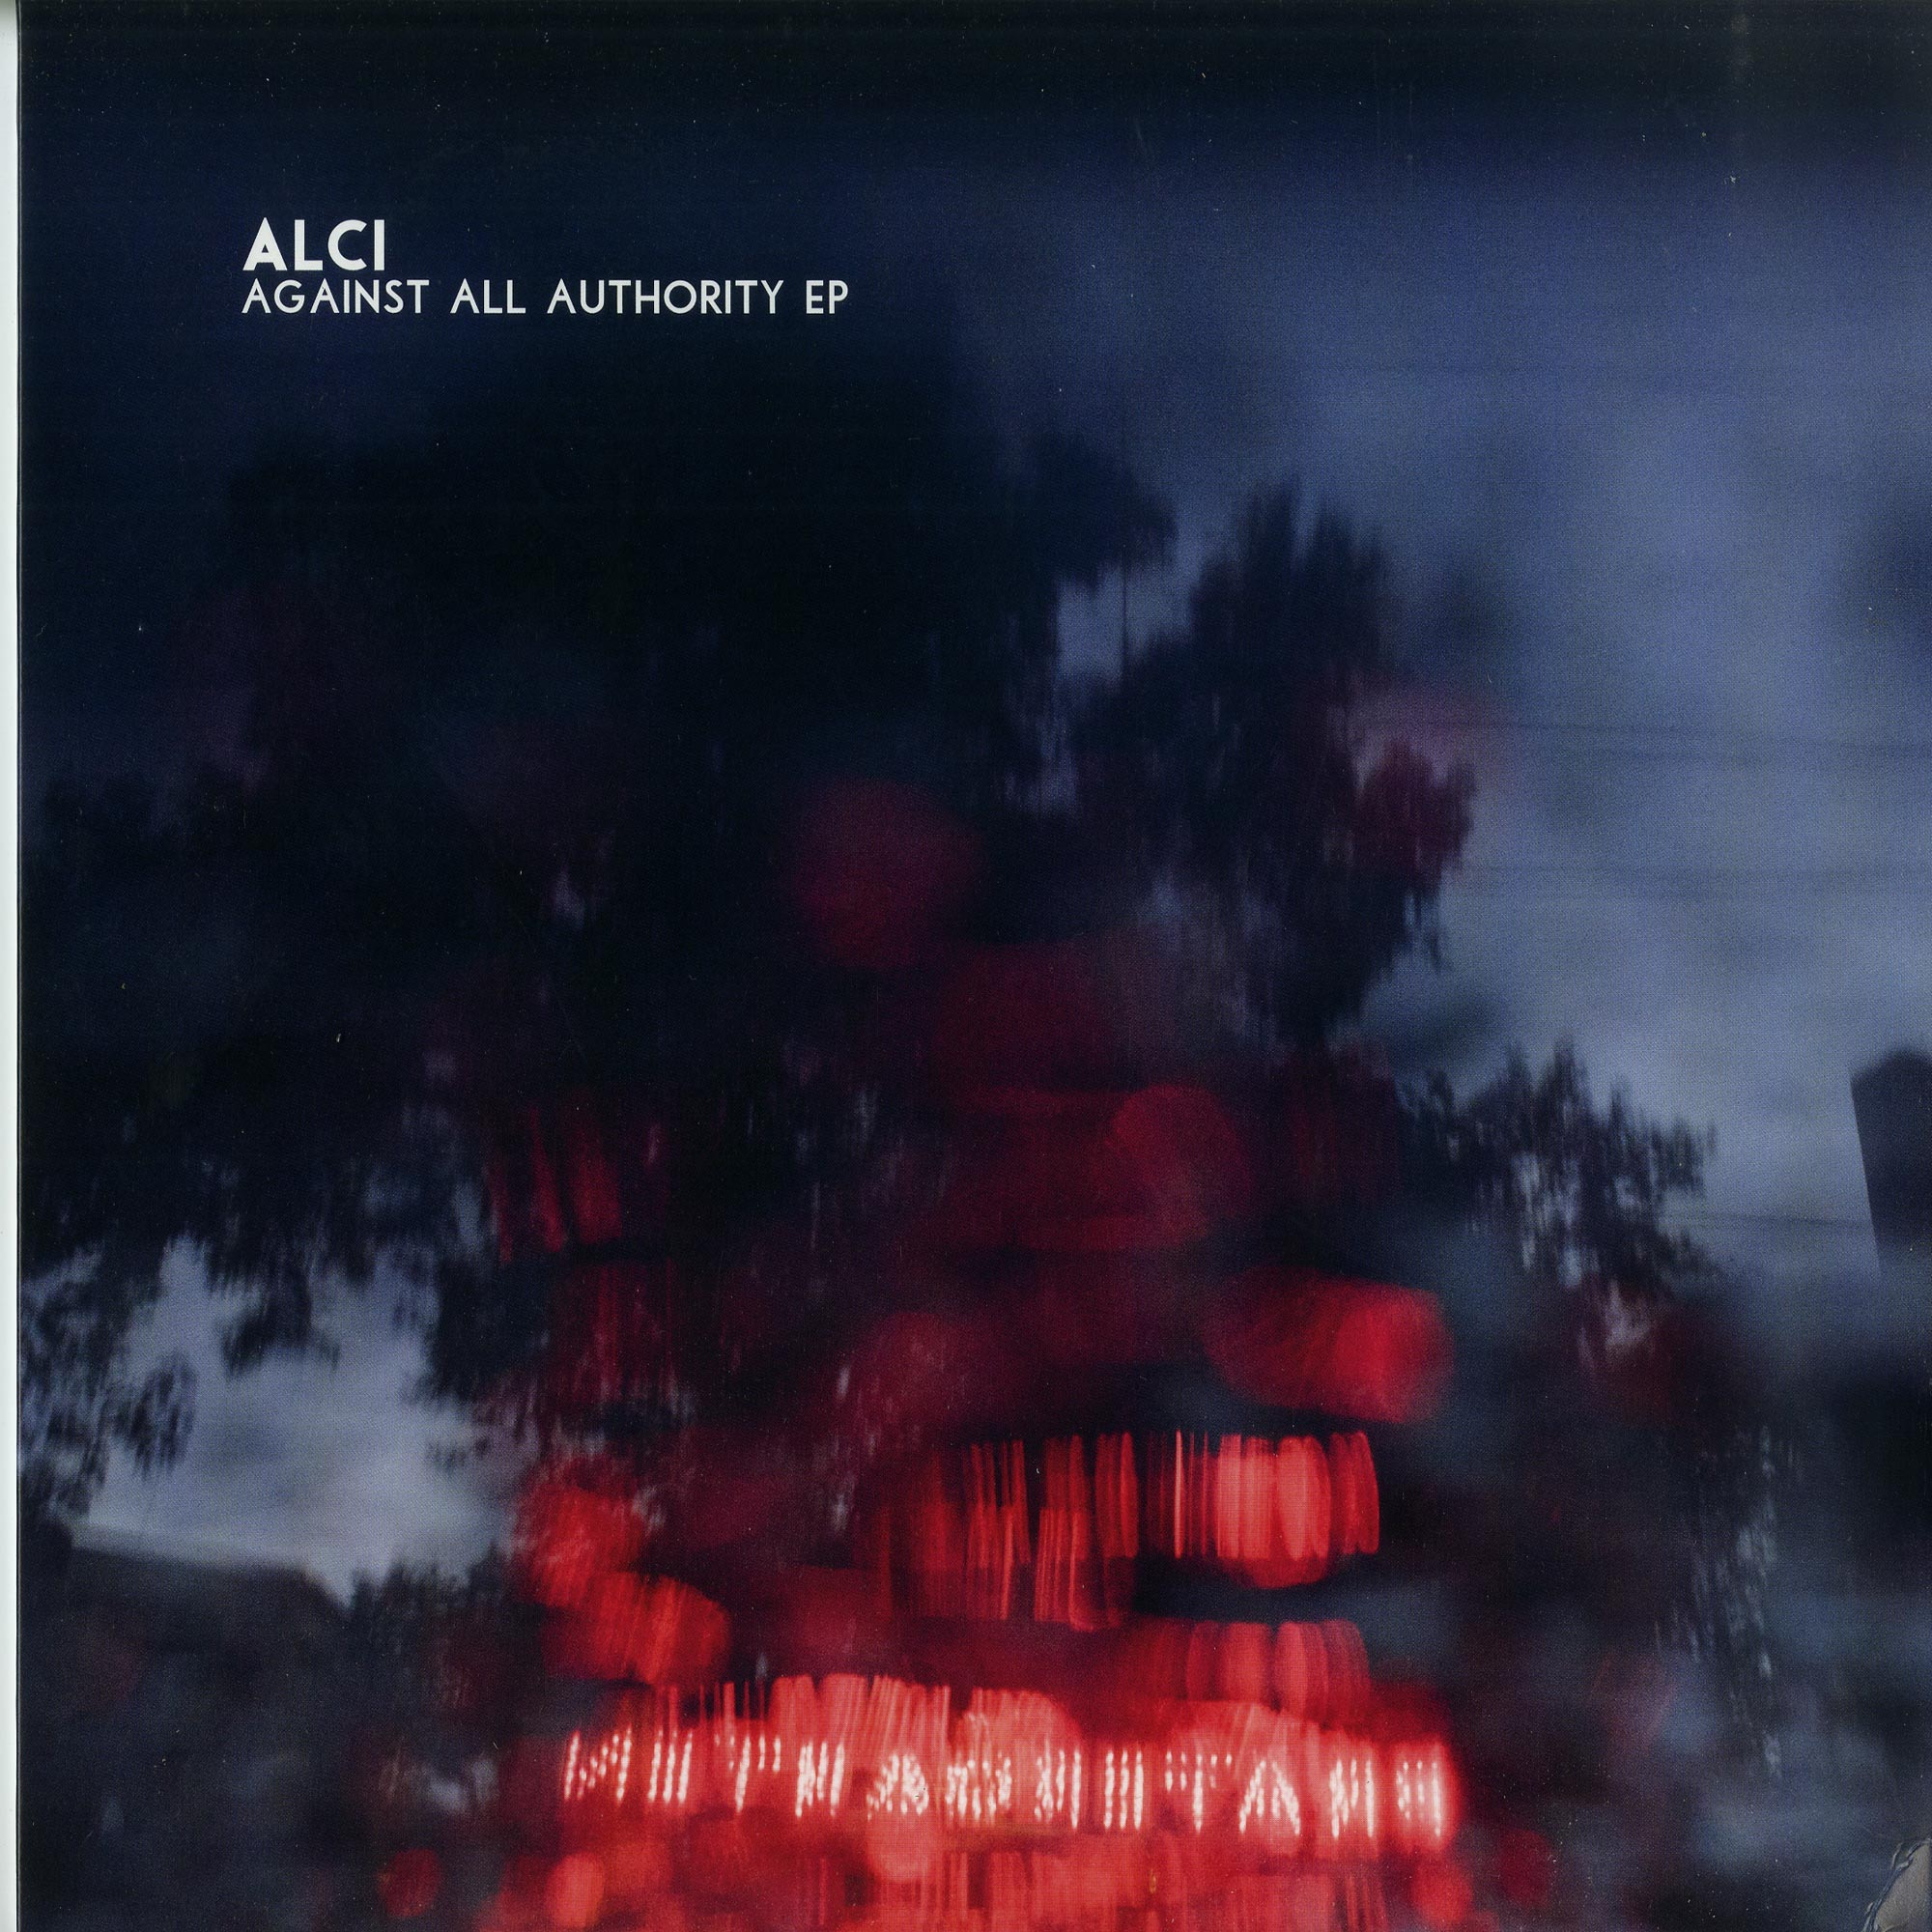 Alci - AGAINST ALL AUTHORITY EP